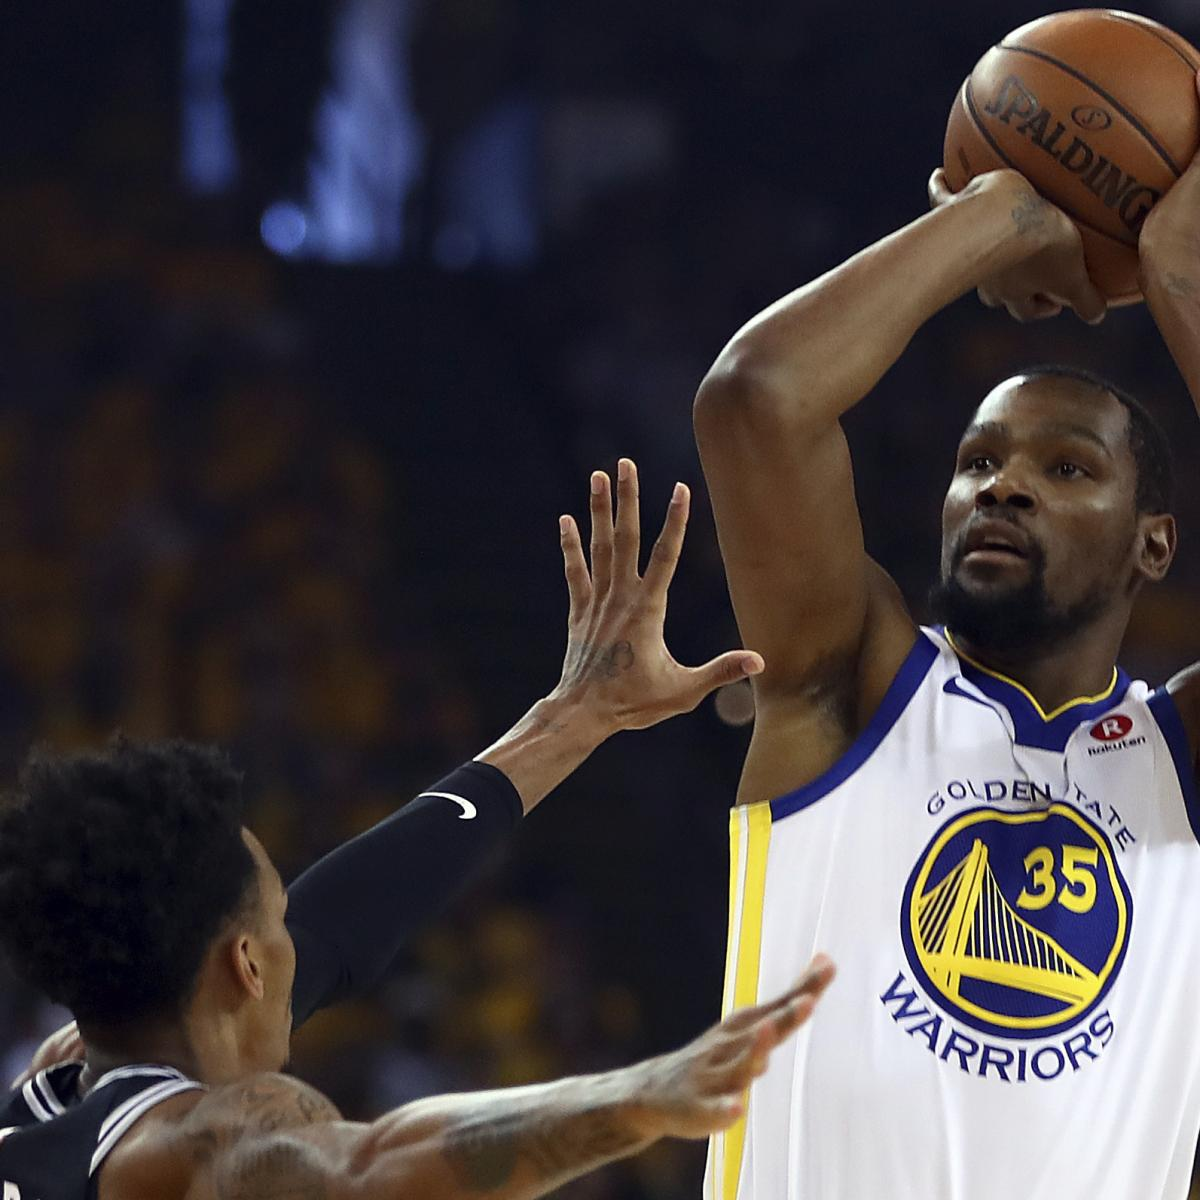 Kevin Durant, Warriors Win Game 1 vs. Spurs; Stephen Curry Out Due to Injury